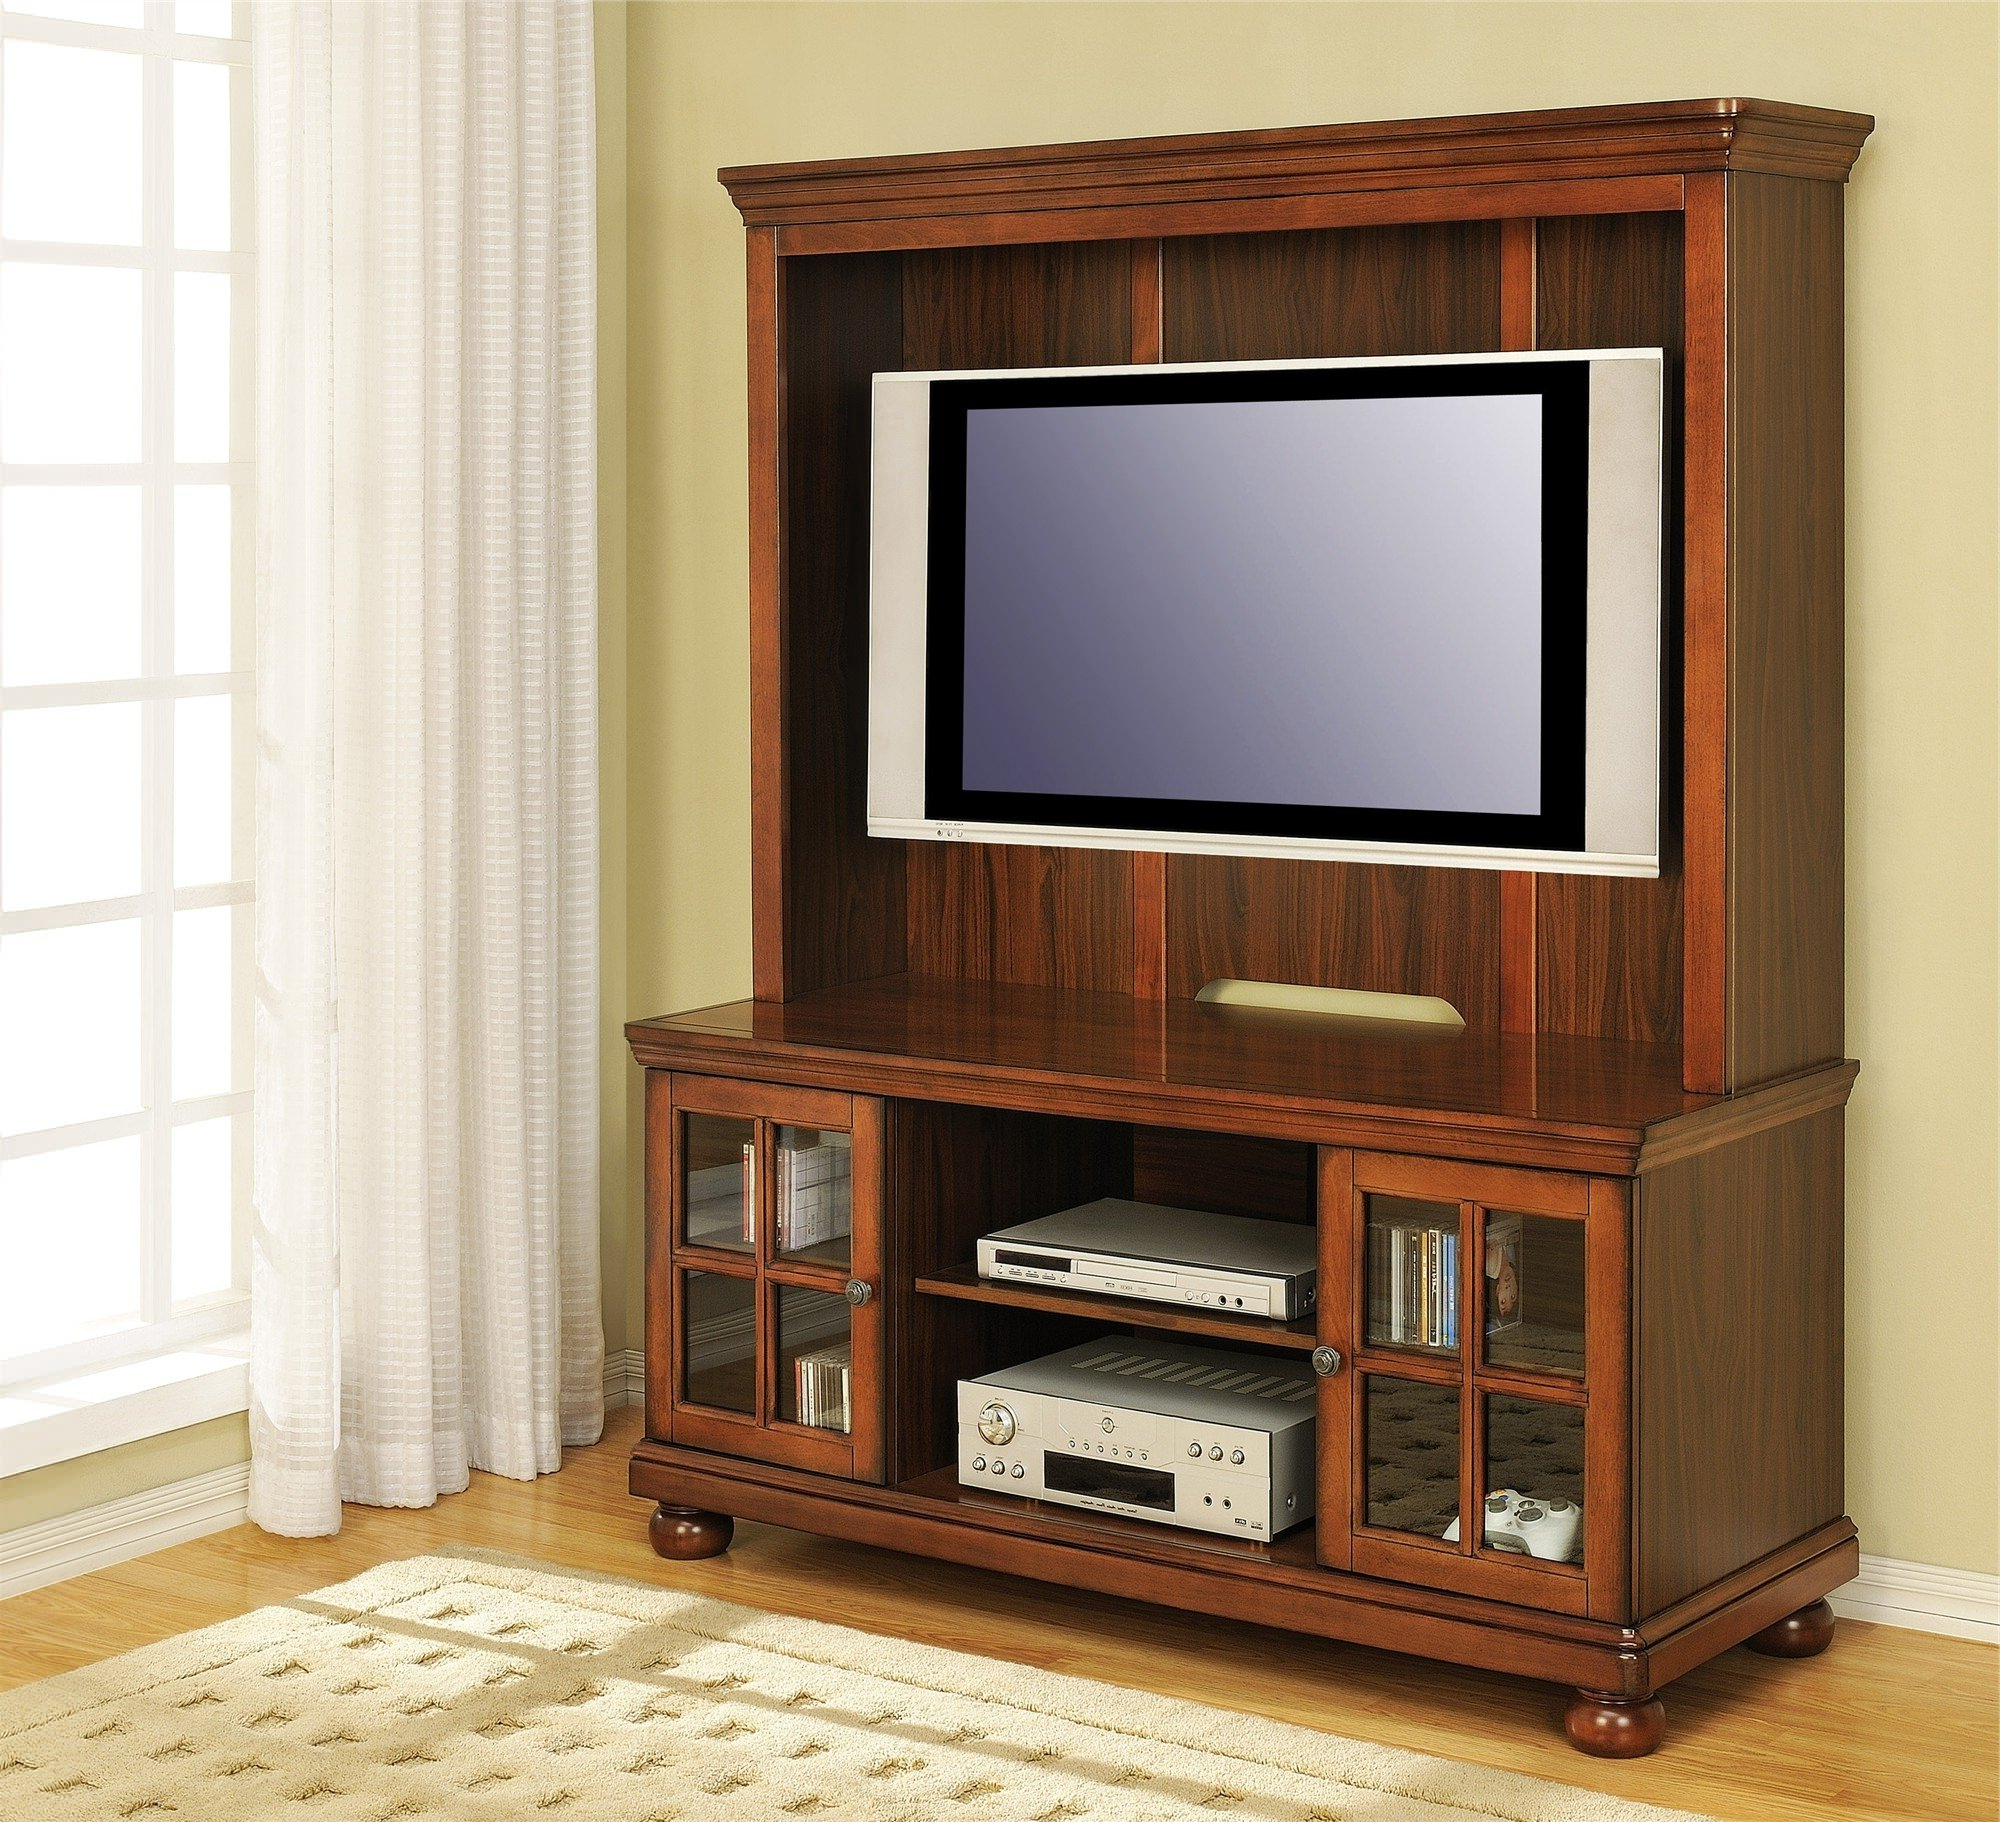 Flat Screen Tv Wall Cabinet Furniture — Allin The Details : Tips For Throughout Preferred Wall Mounted Tv Cabinets For Flat Screens (View 9 of 20)